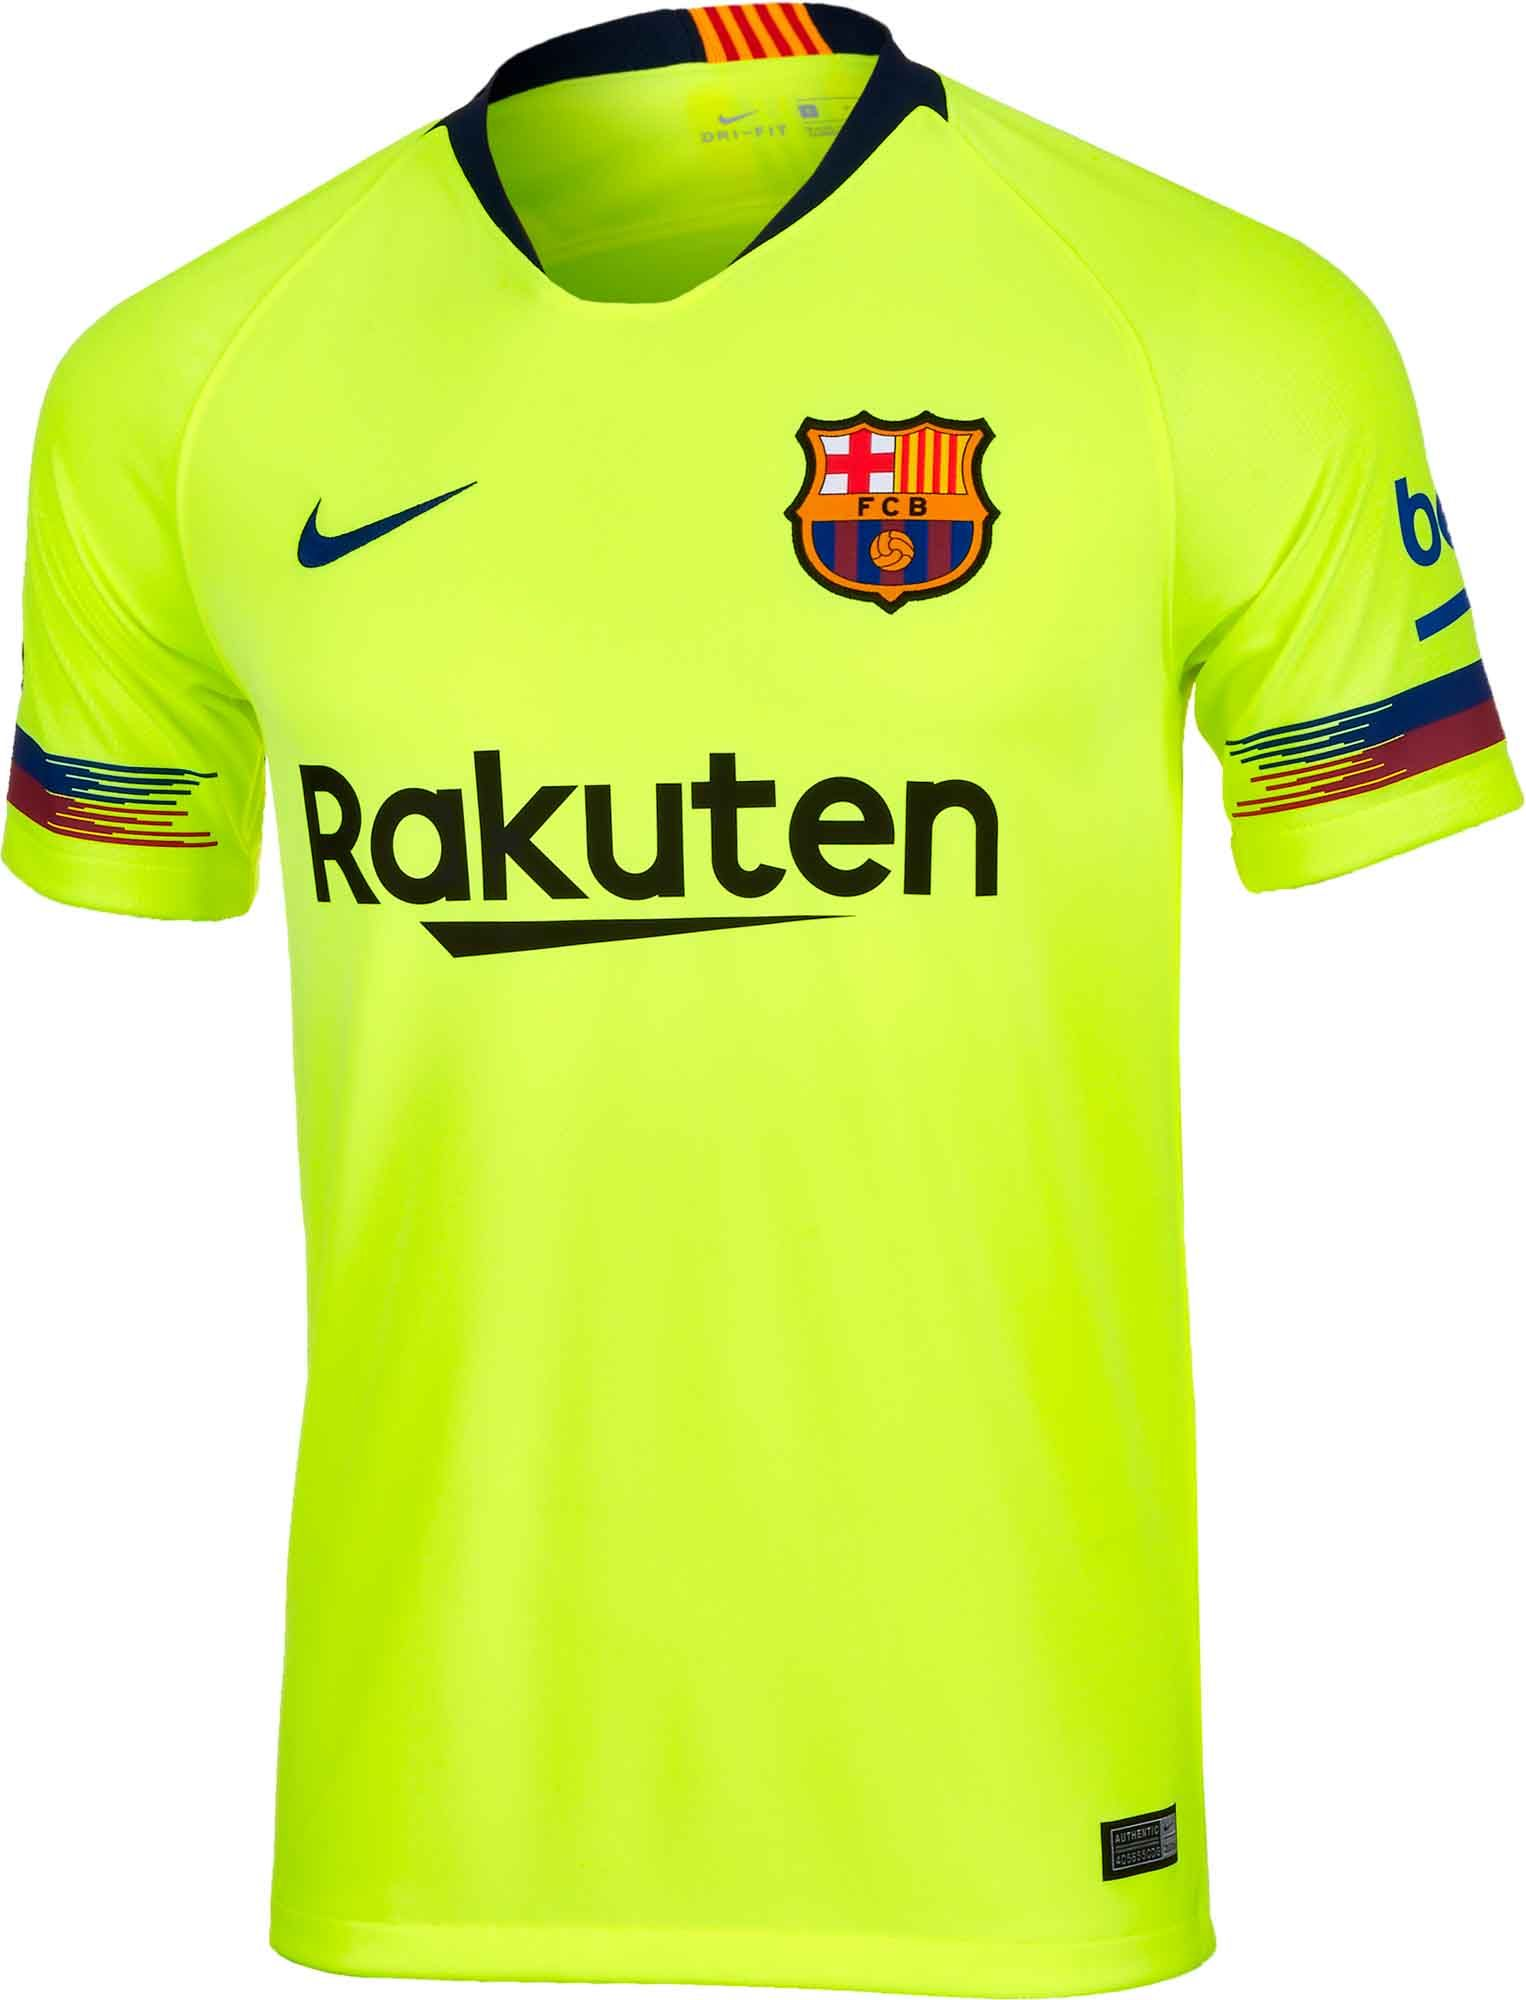 ca46c516001 2018 19 Nike FC Barcelona Away Jersey. Buy it from SoccerPro.